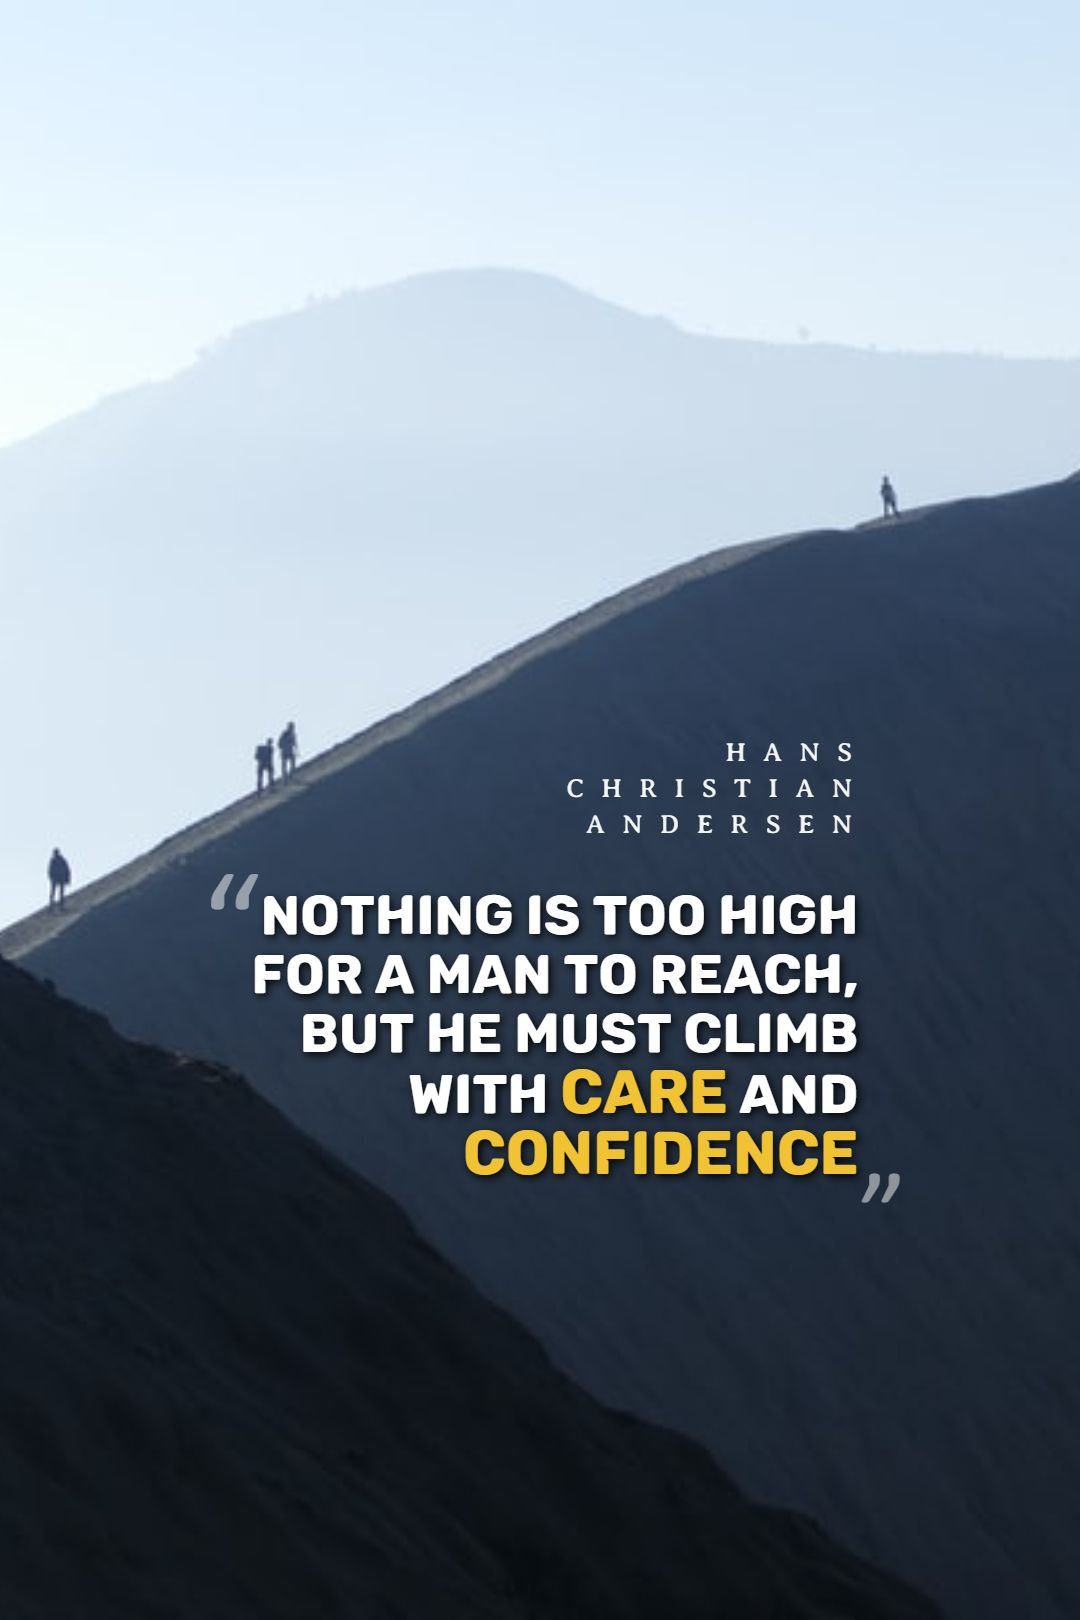 Quotes image of Nothing is too high for a man to reach, but he must climb with care and confidence